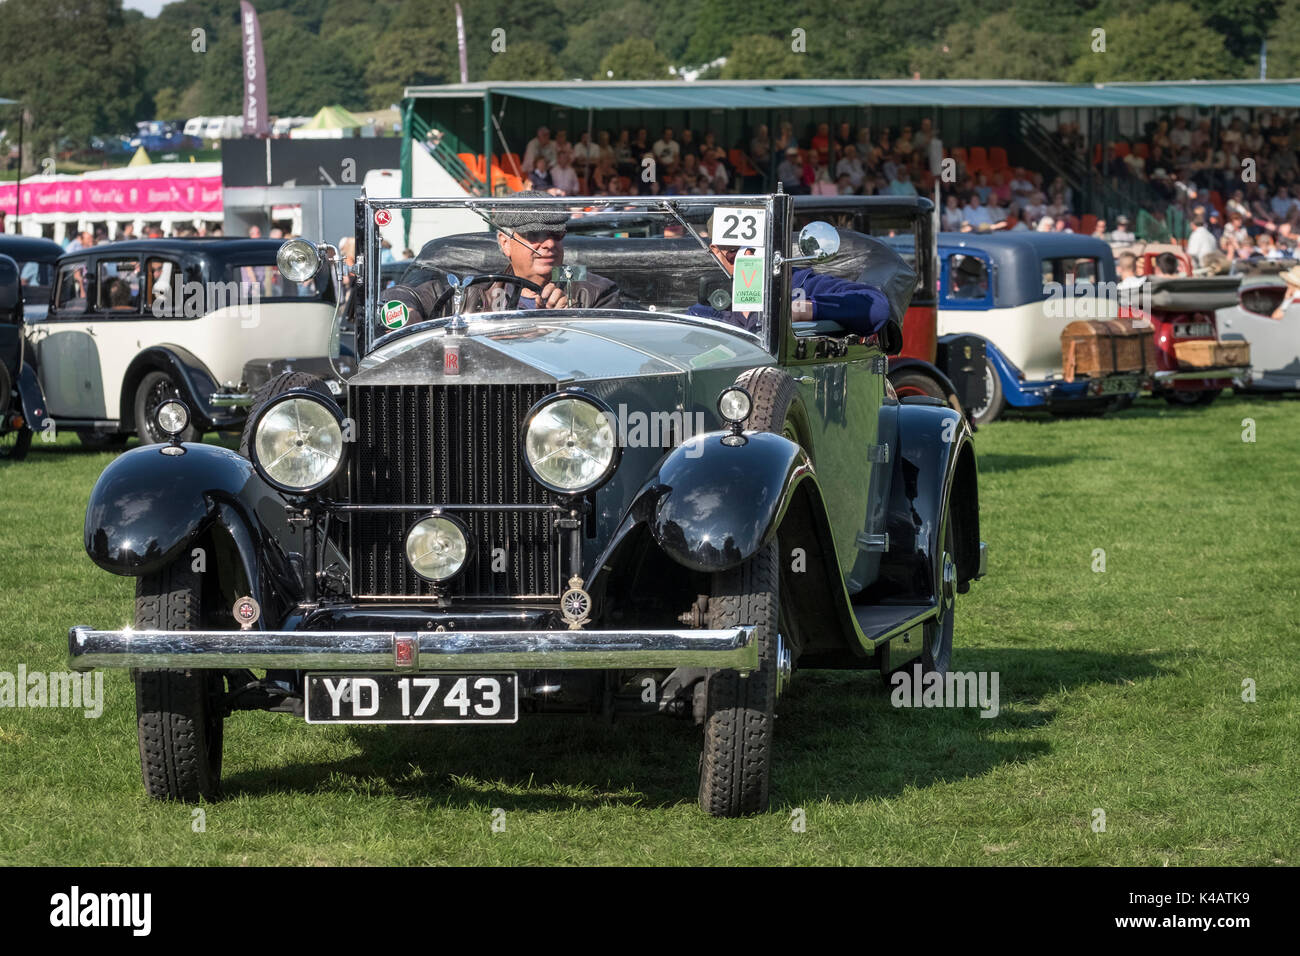 Vintage Rolls Royce car displayed with others at a Country Fair event, Derbyshire, UK - Stock Image